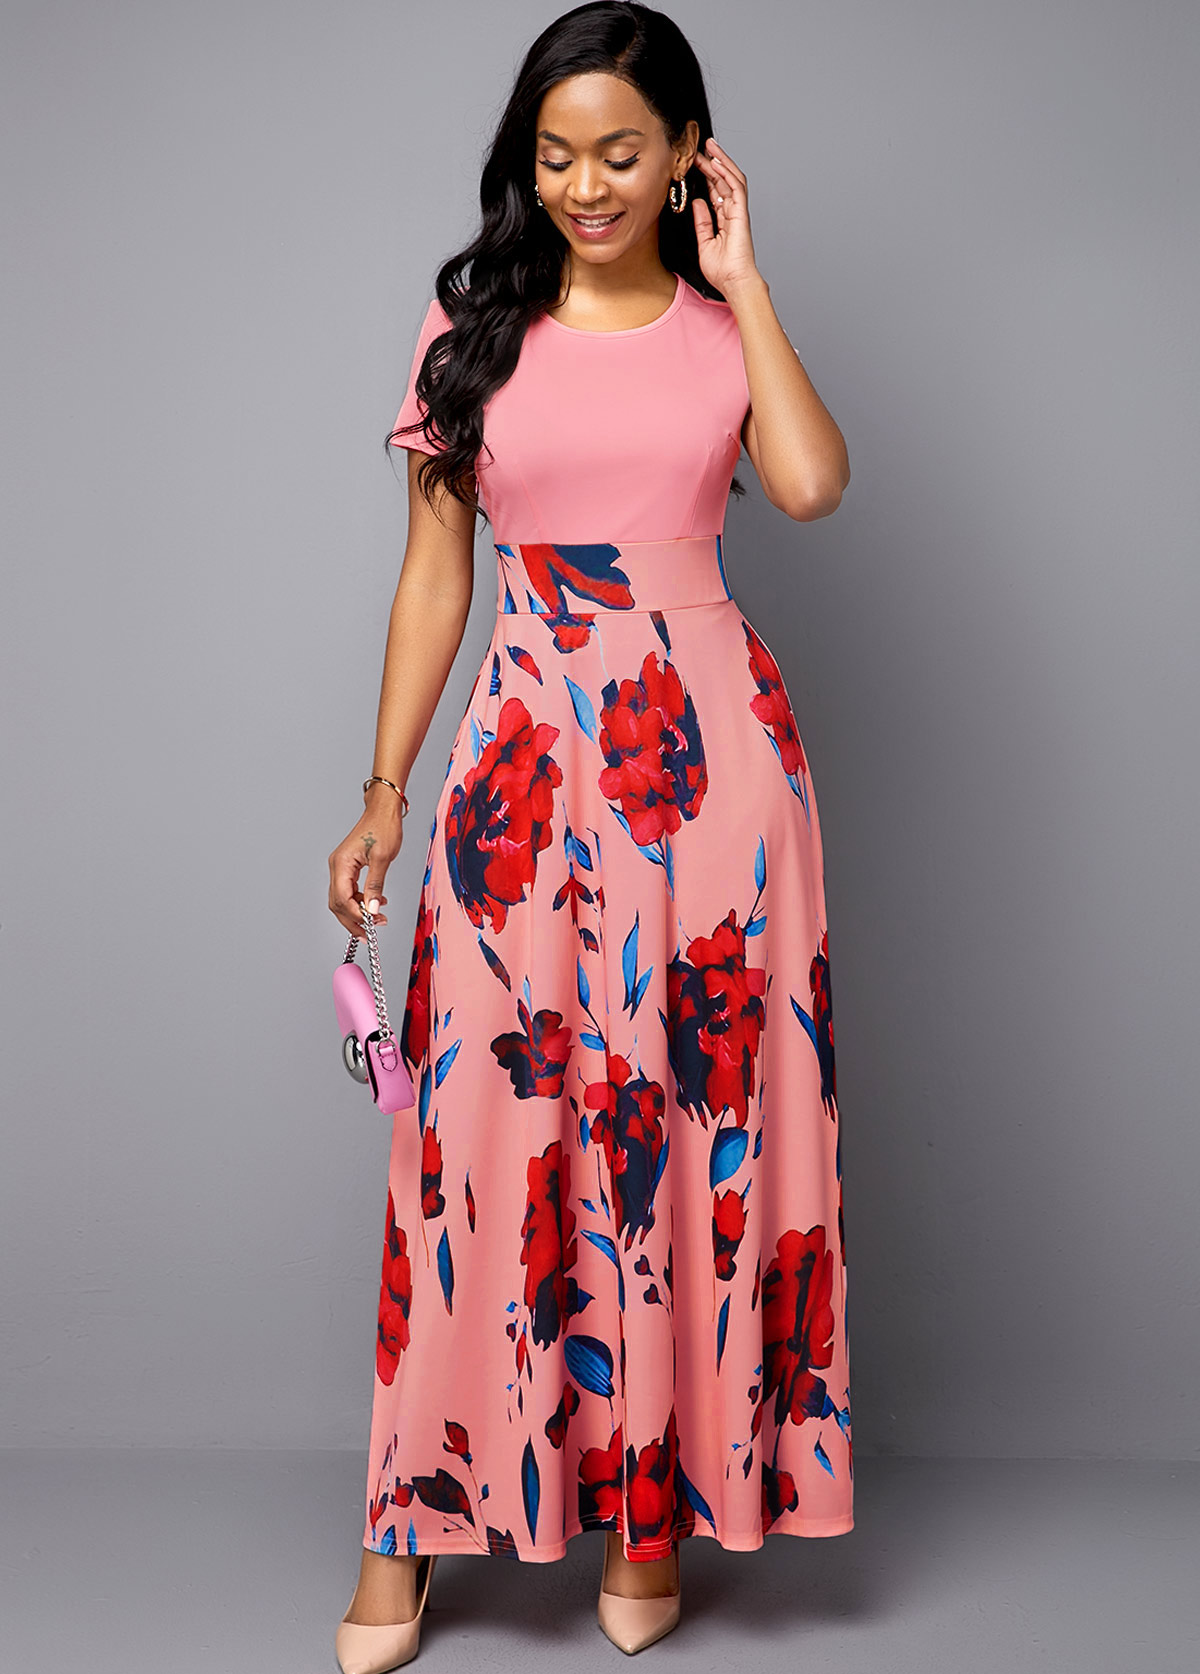 Short Sleeve Flower Print Pink Dress